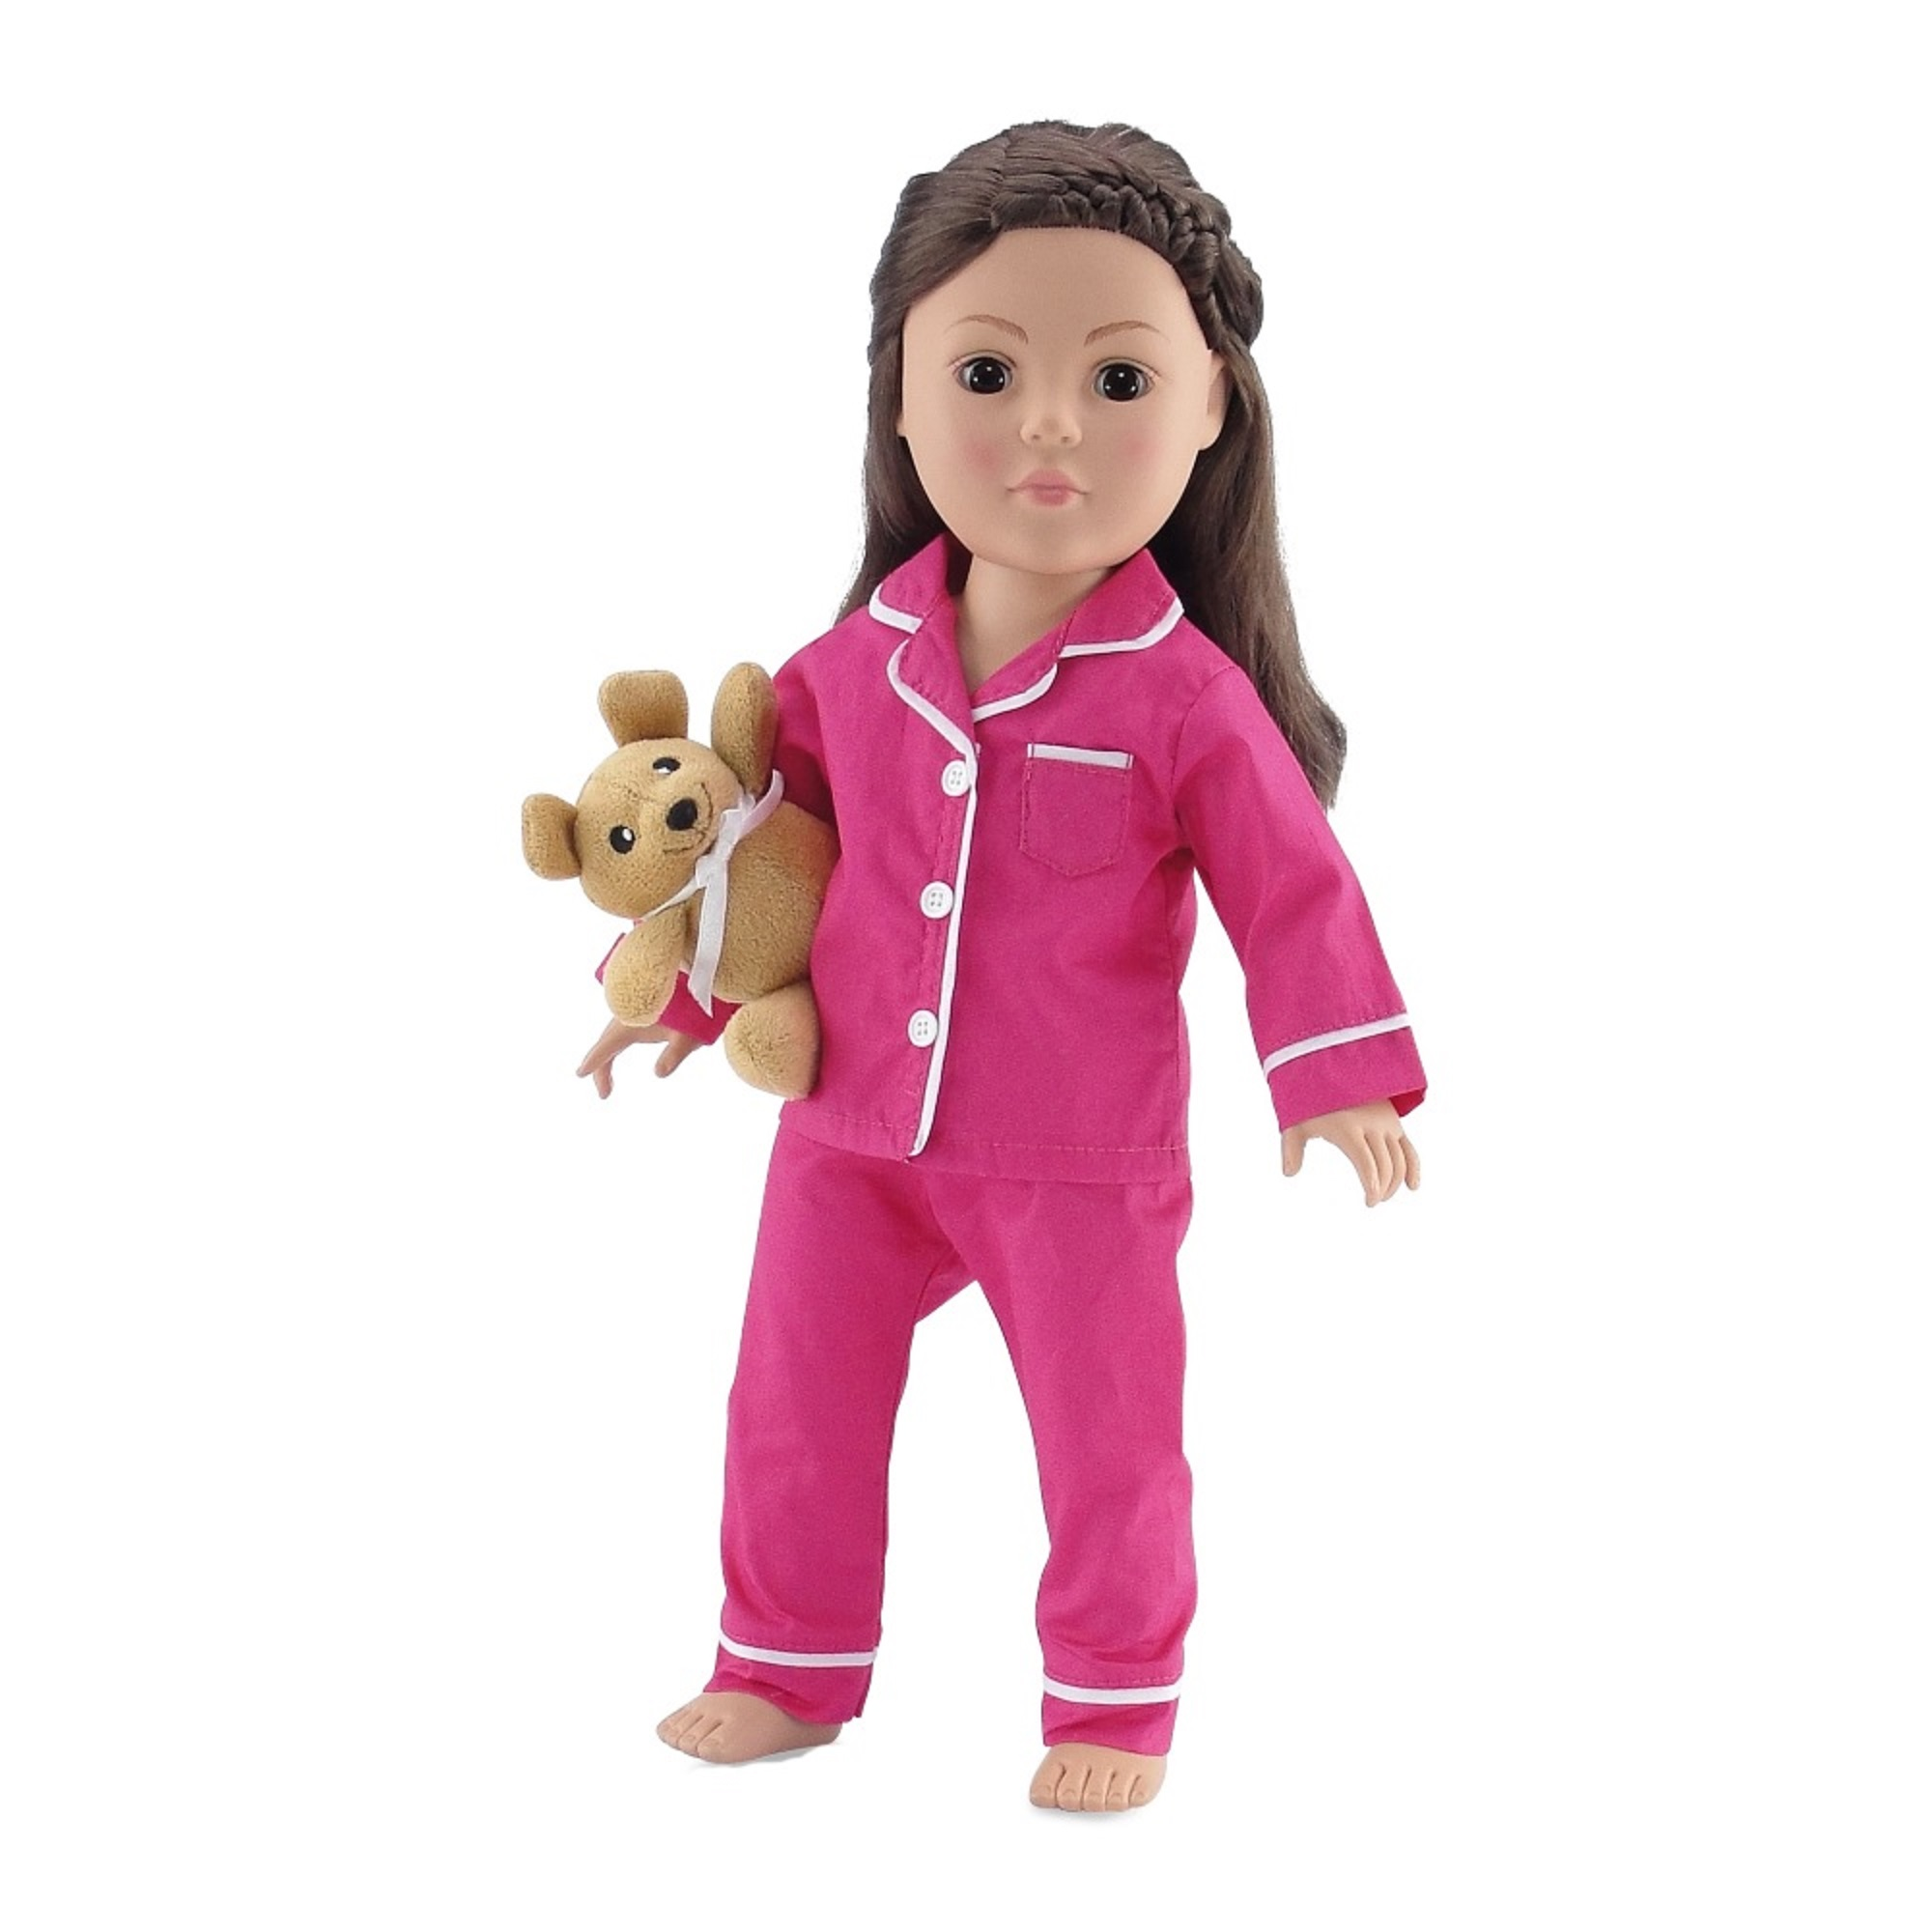 18 Inch Doll Clothes |Bright Pink and White Classic 2 Piece Pajama PJ Outfit with Teddy... by Emily Rose Doll Clothes